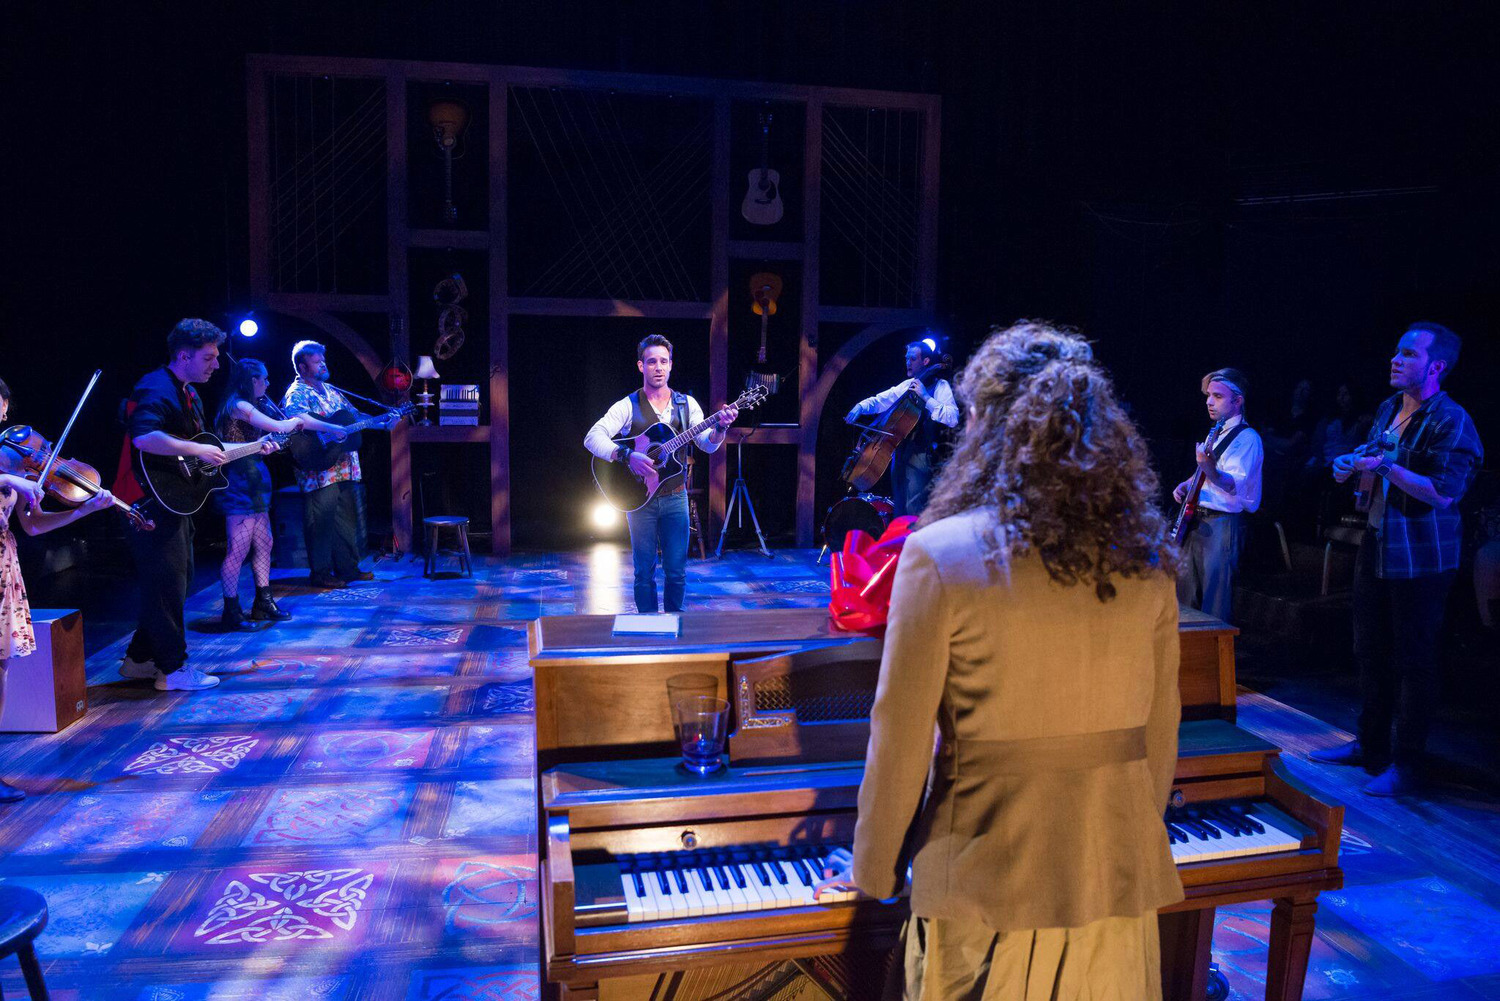 BWW Review: Theatre Raleigh's ONCE is Simply Grand